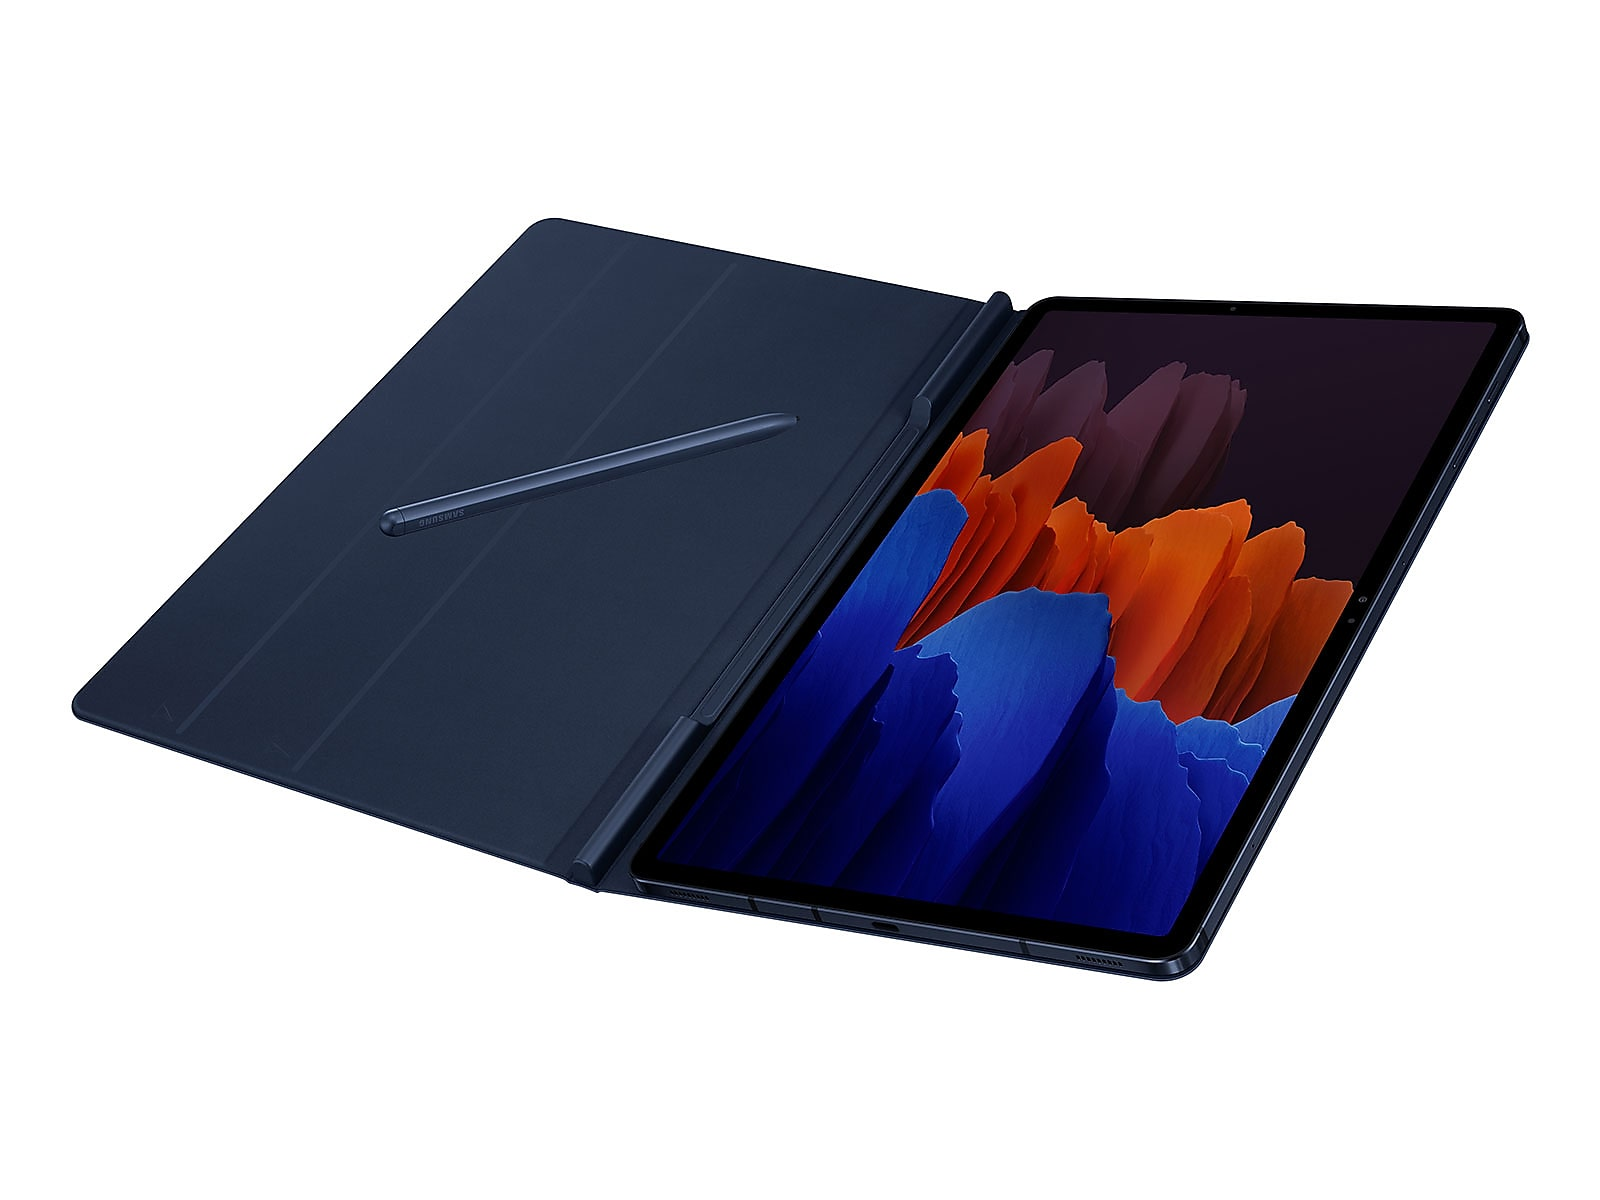 Samsung coupon: Samsung Galaxy Tab S7+ Bookcover - Mystic in Navy Blue